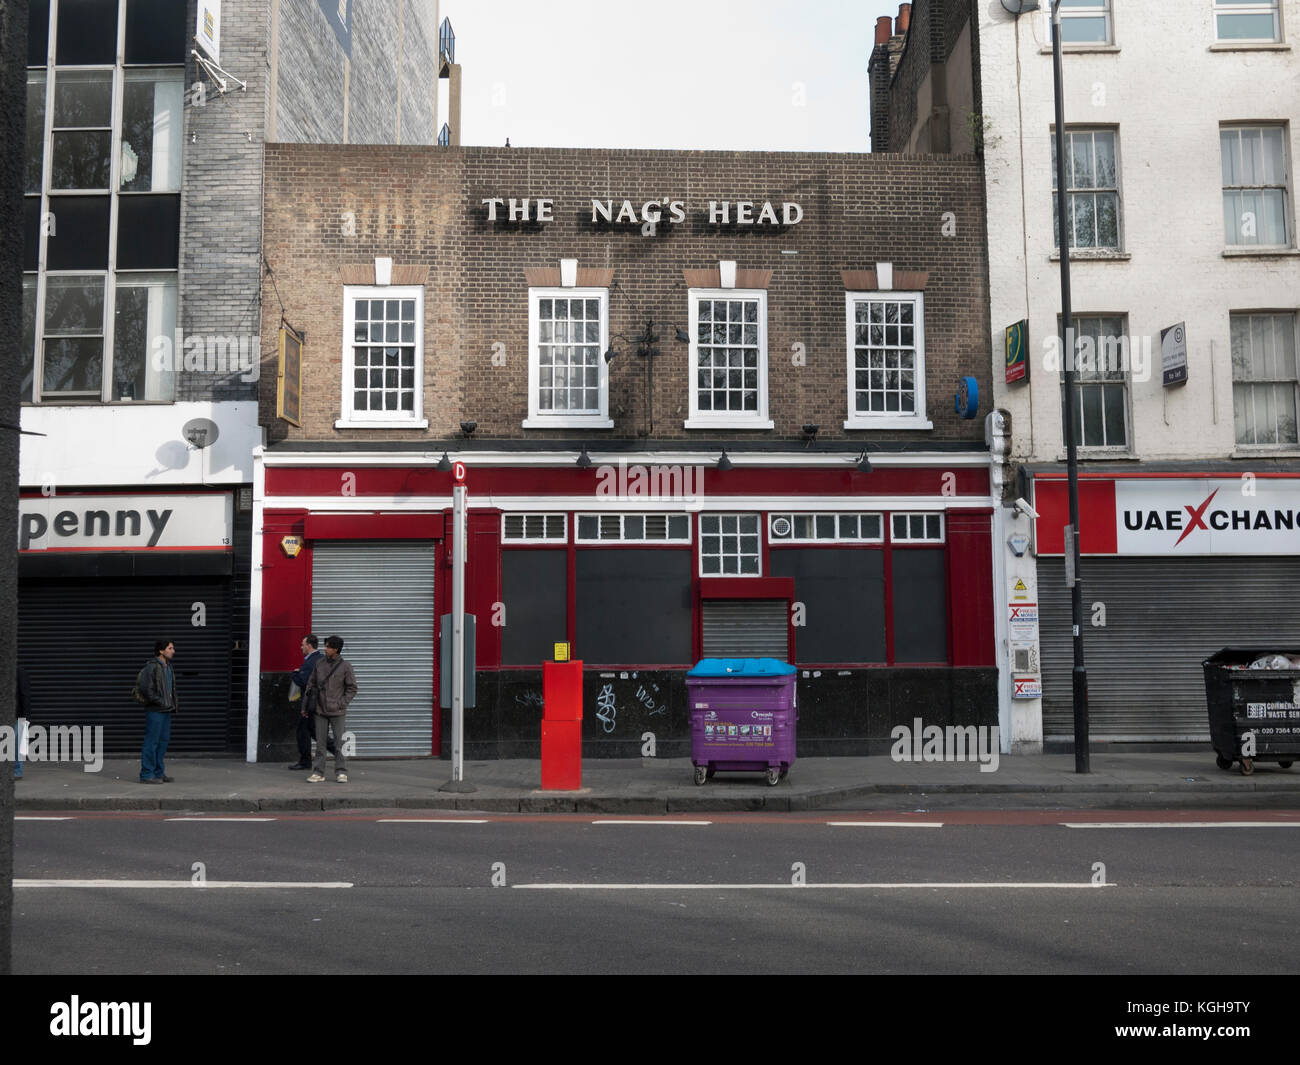 Nag's Head public house on Whitechapel Road in the East End of London - Stock Image